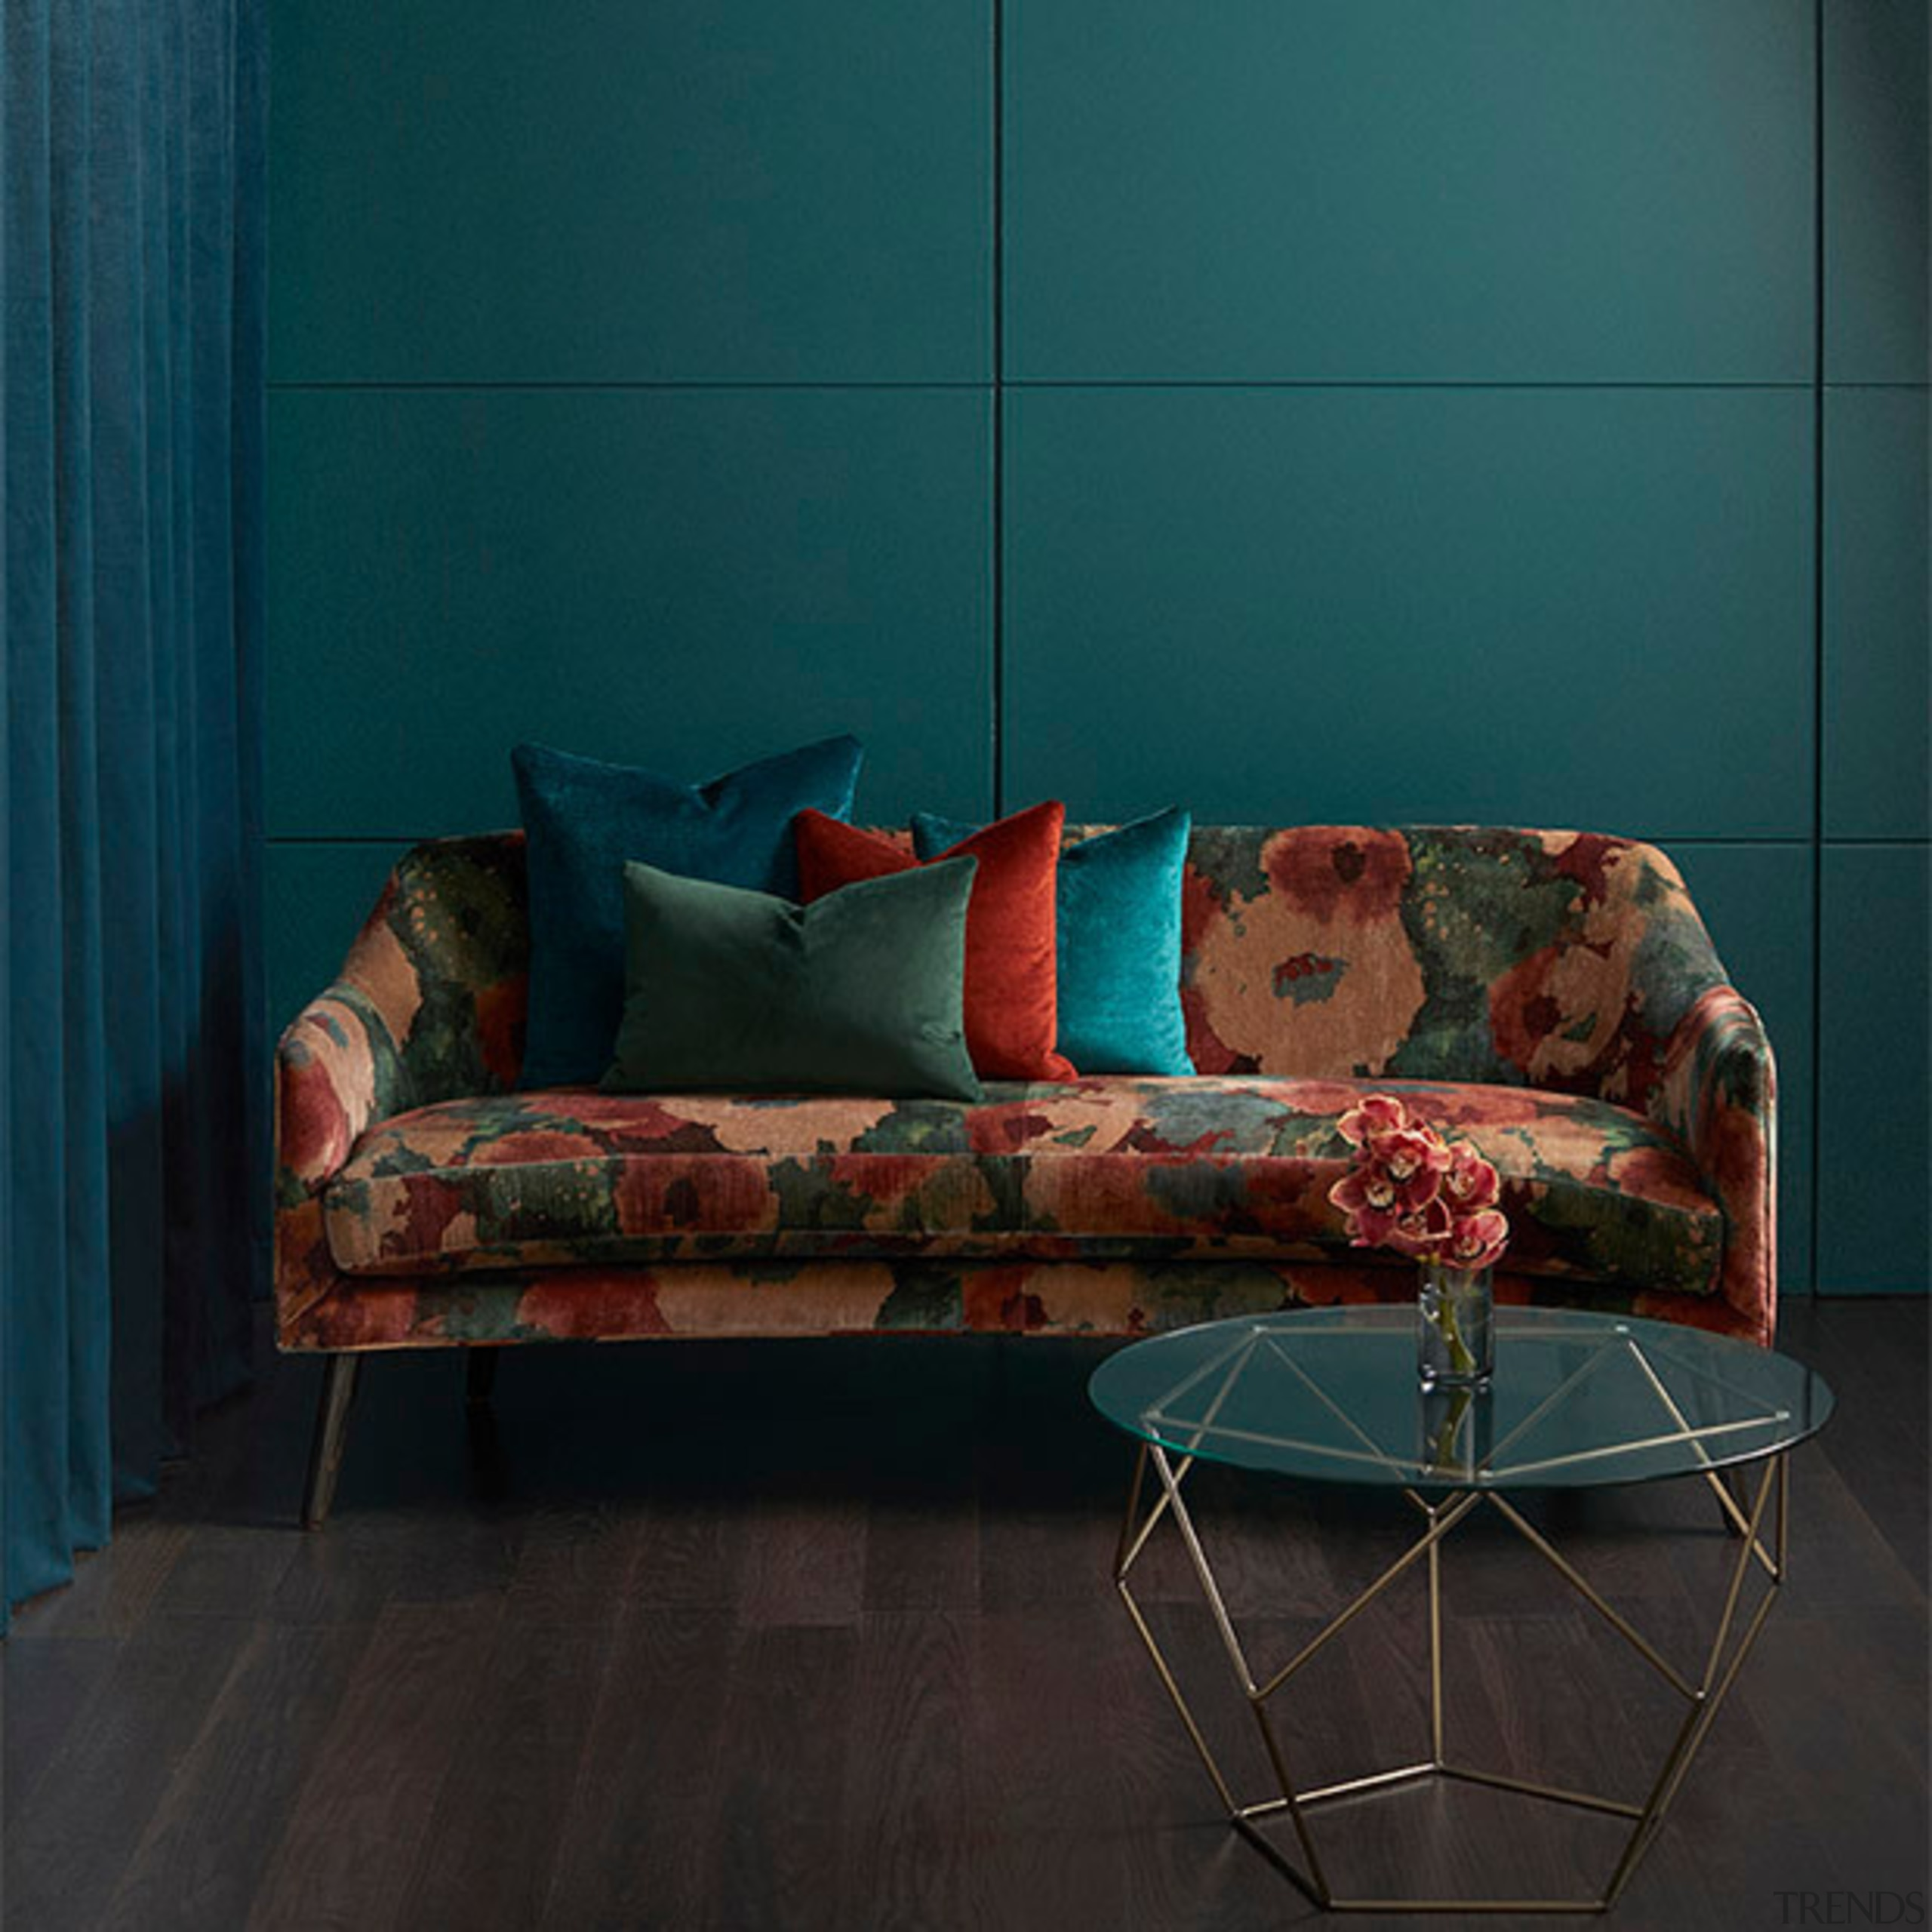 Big, bold and beautiful, ALCHEMY is the perfect chair, chaise longue, couch, floor, furniture, interior design, living room, room, sofa bed, table, wall, wood, teal, black